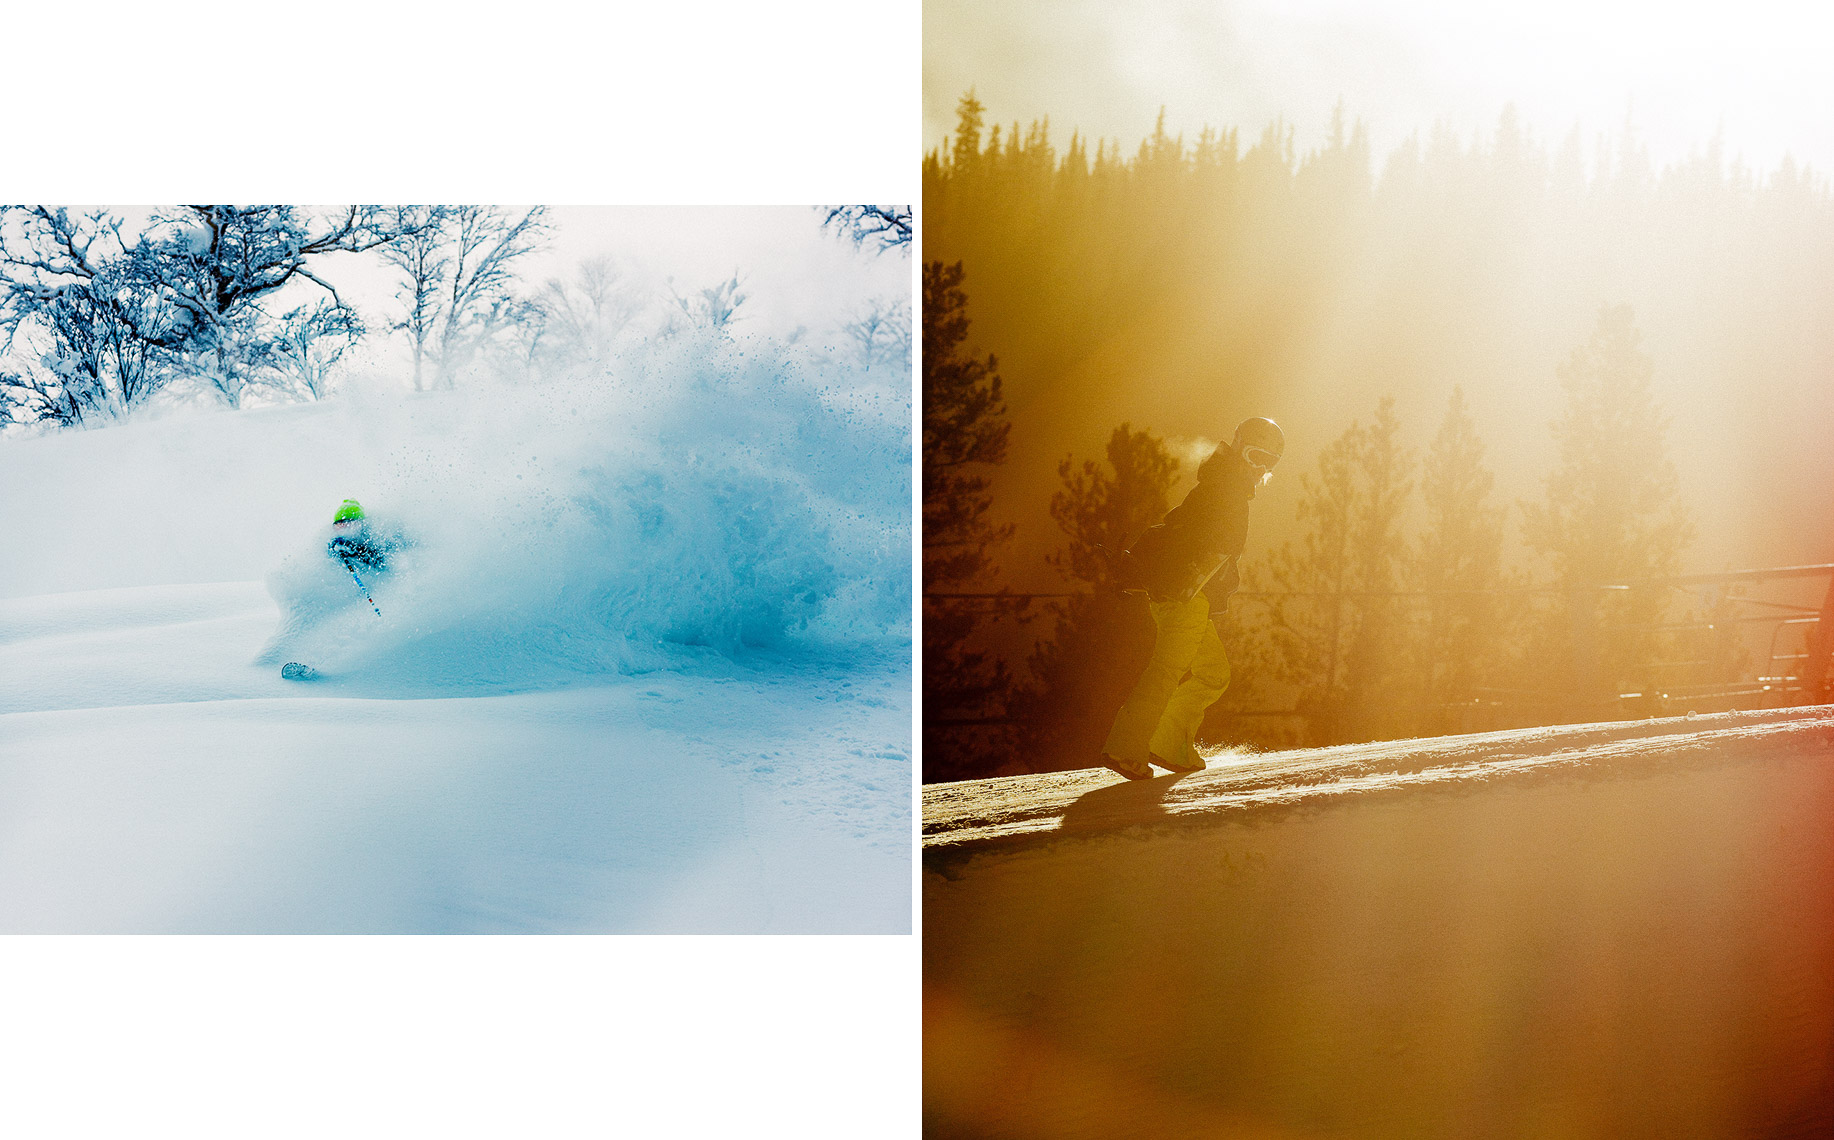 (L) Eric Pollard, Hokkaido, Japan. (R) Gretchen Bleiler. Copper Mountain, CO.